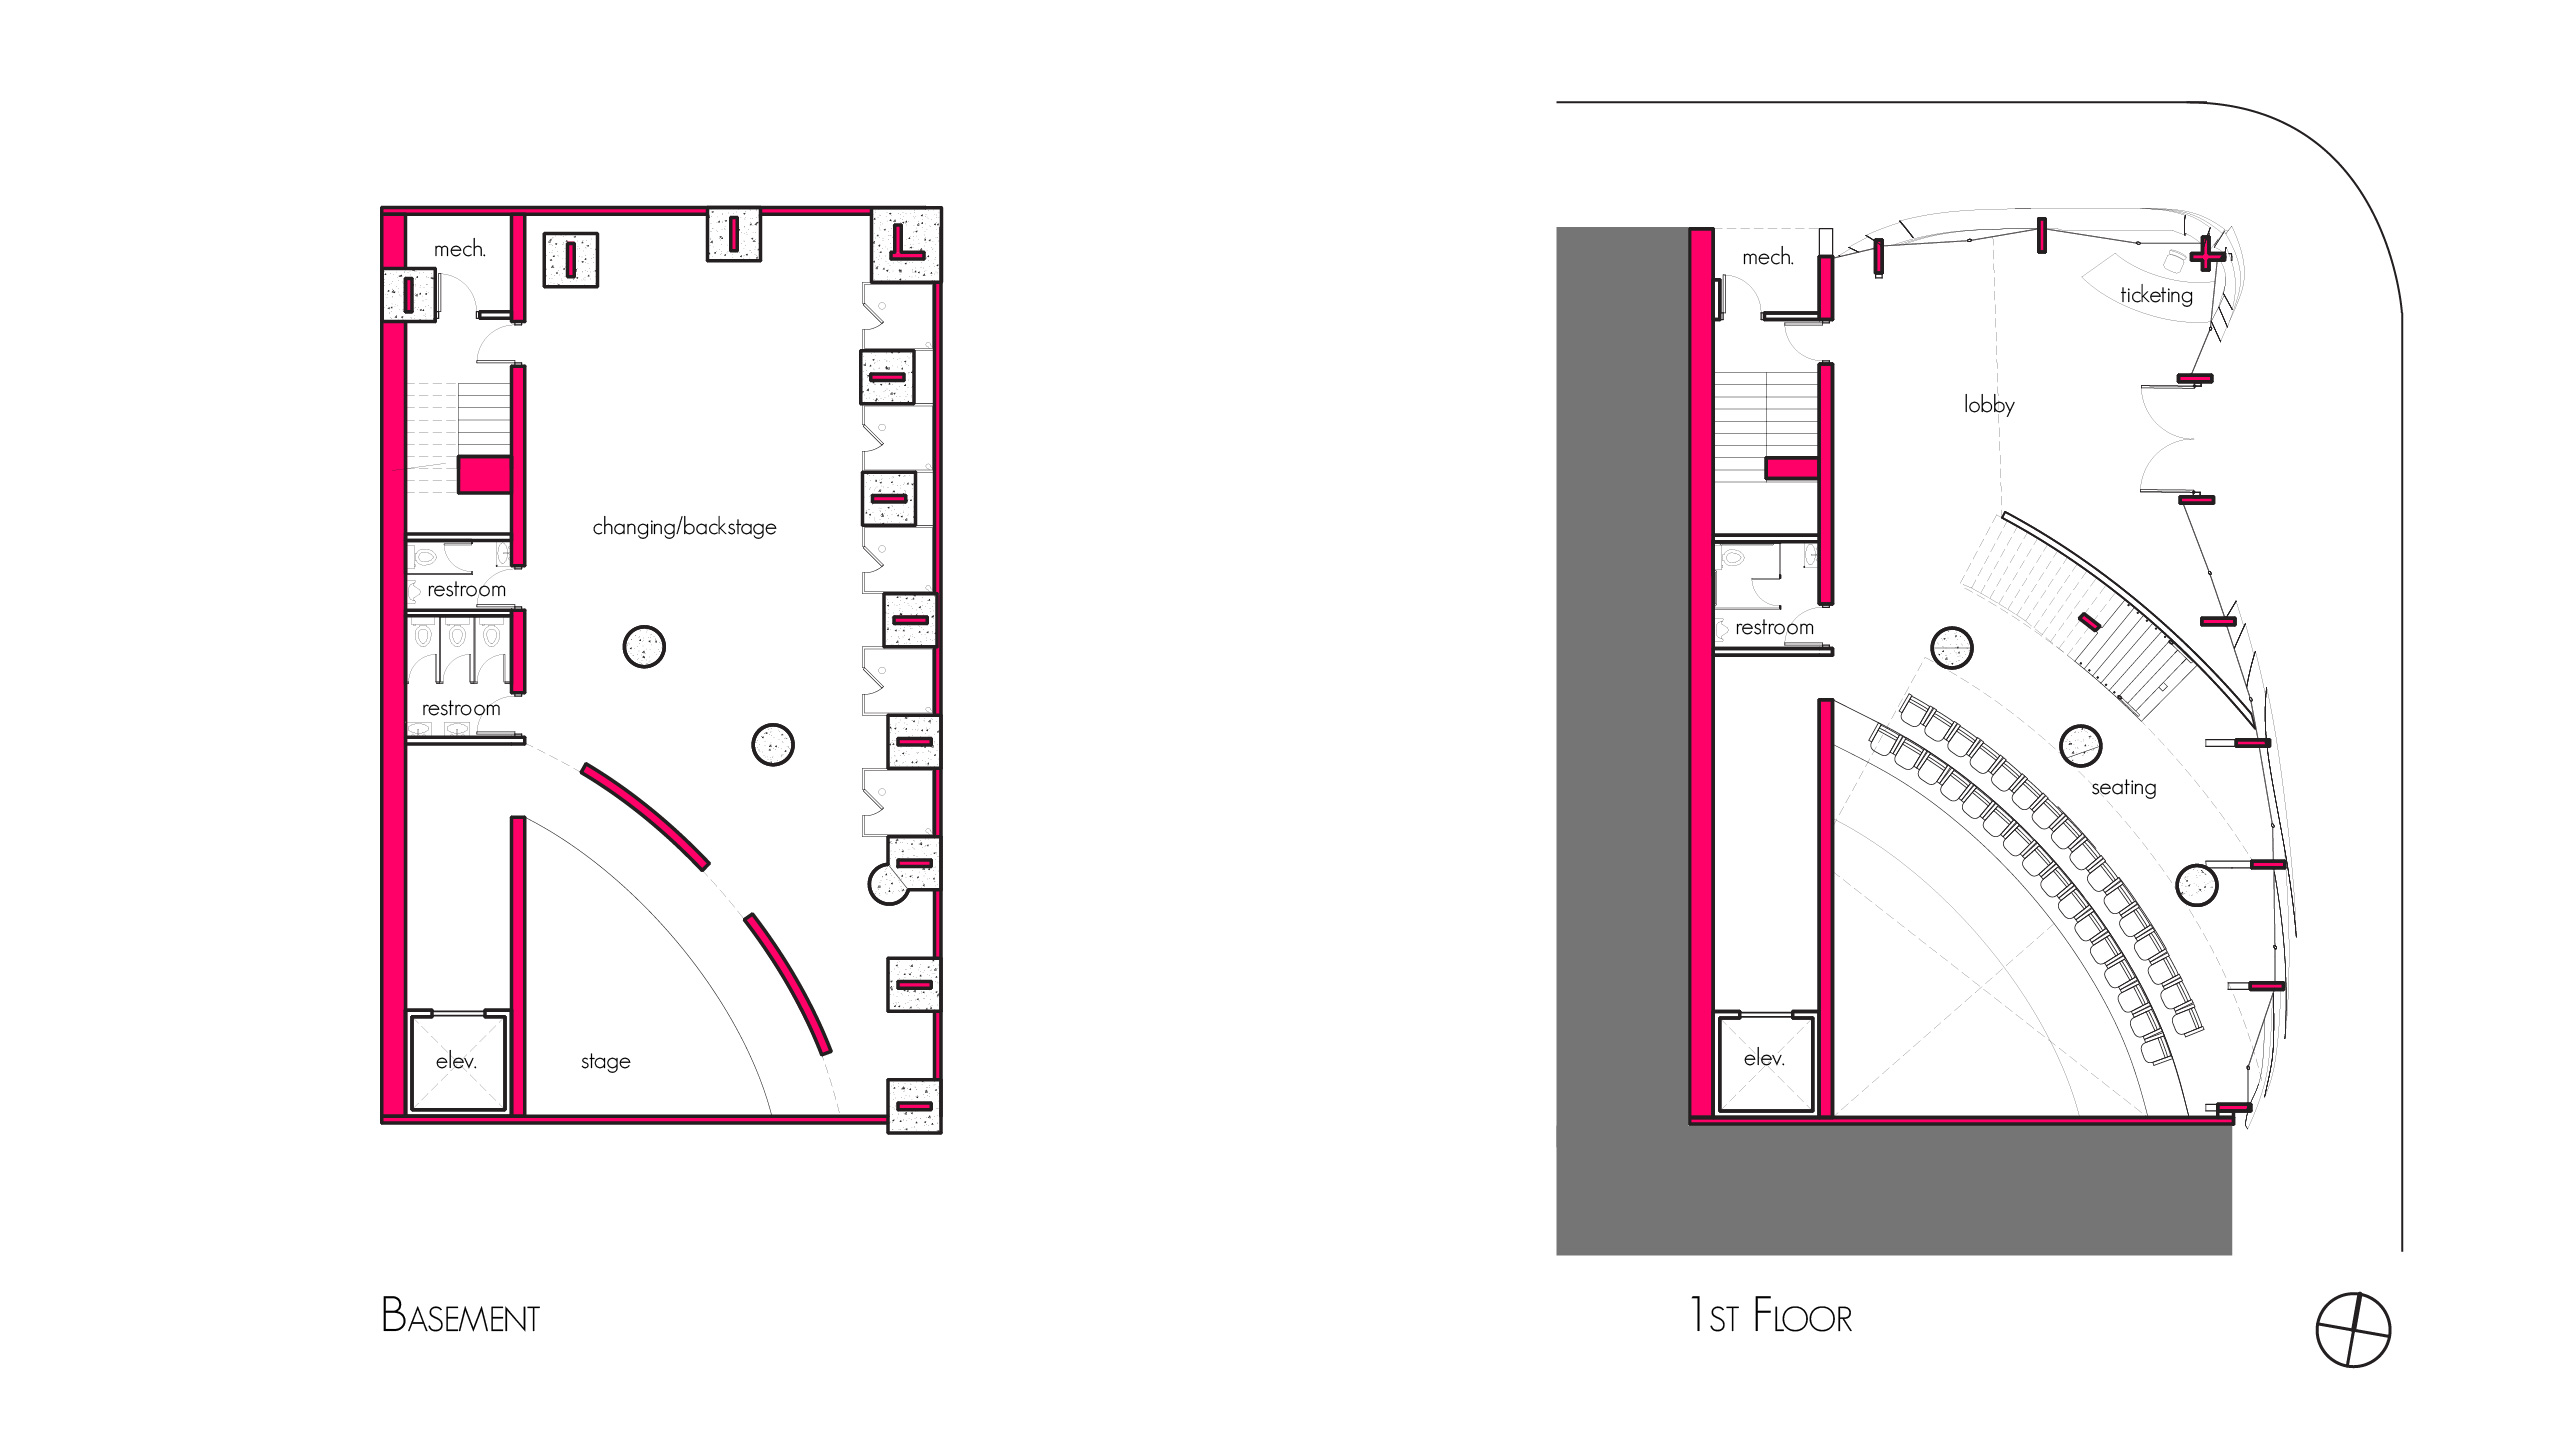 Plans - Basement and First Floor